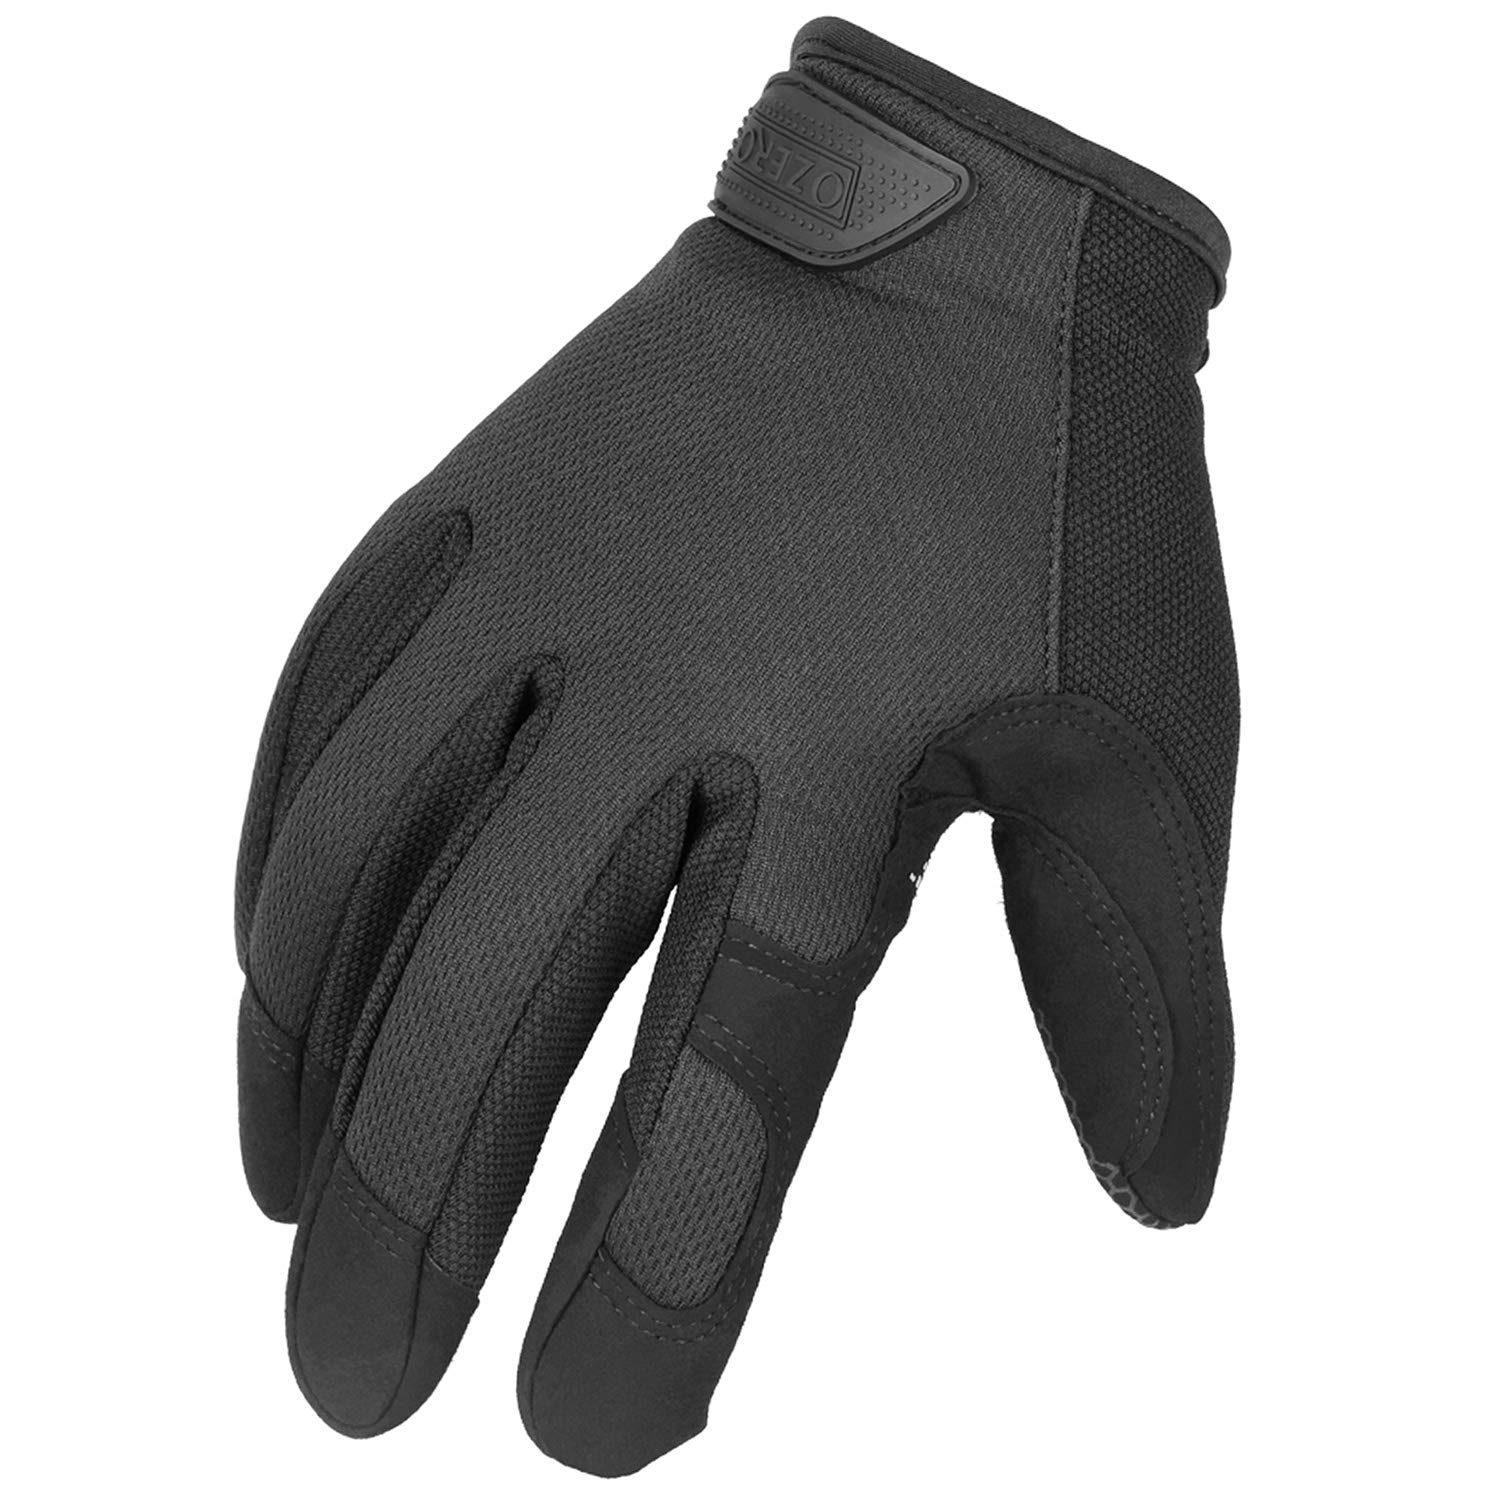 Mechanic Gloves with Touch Screen FingerTips - Improved Dexterity and Extra Grip for Men and Women (Black,Medium)